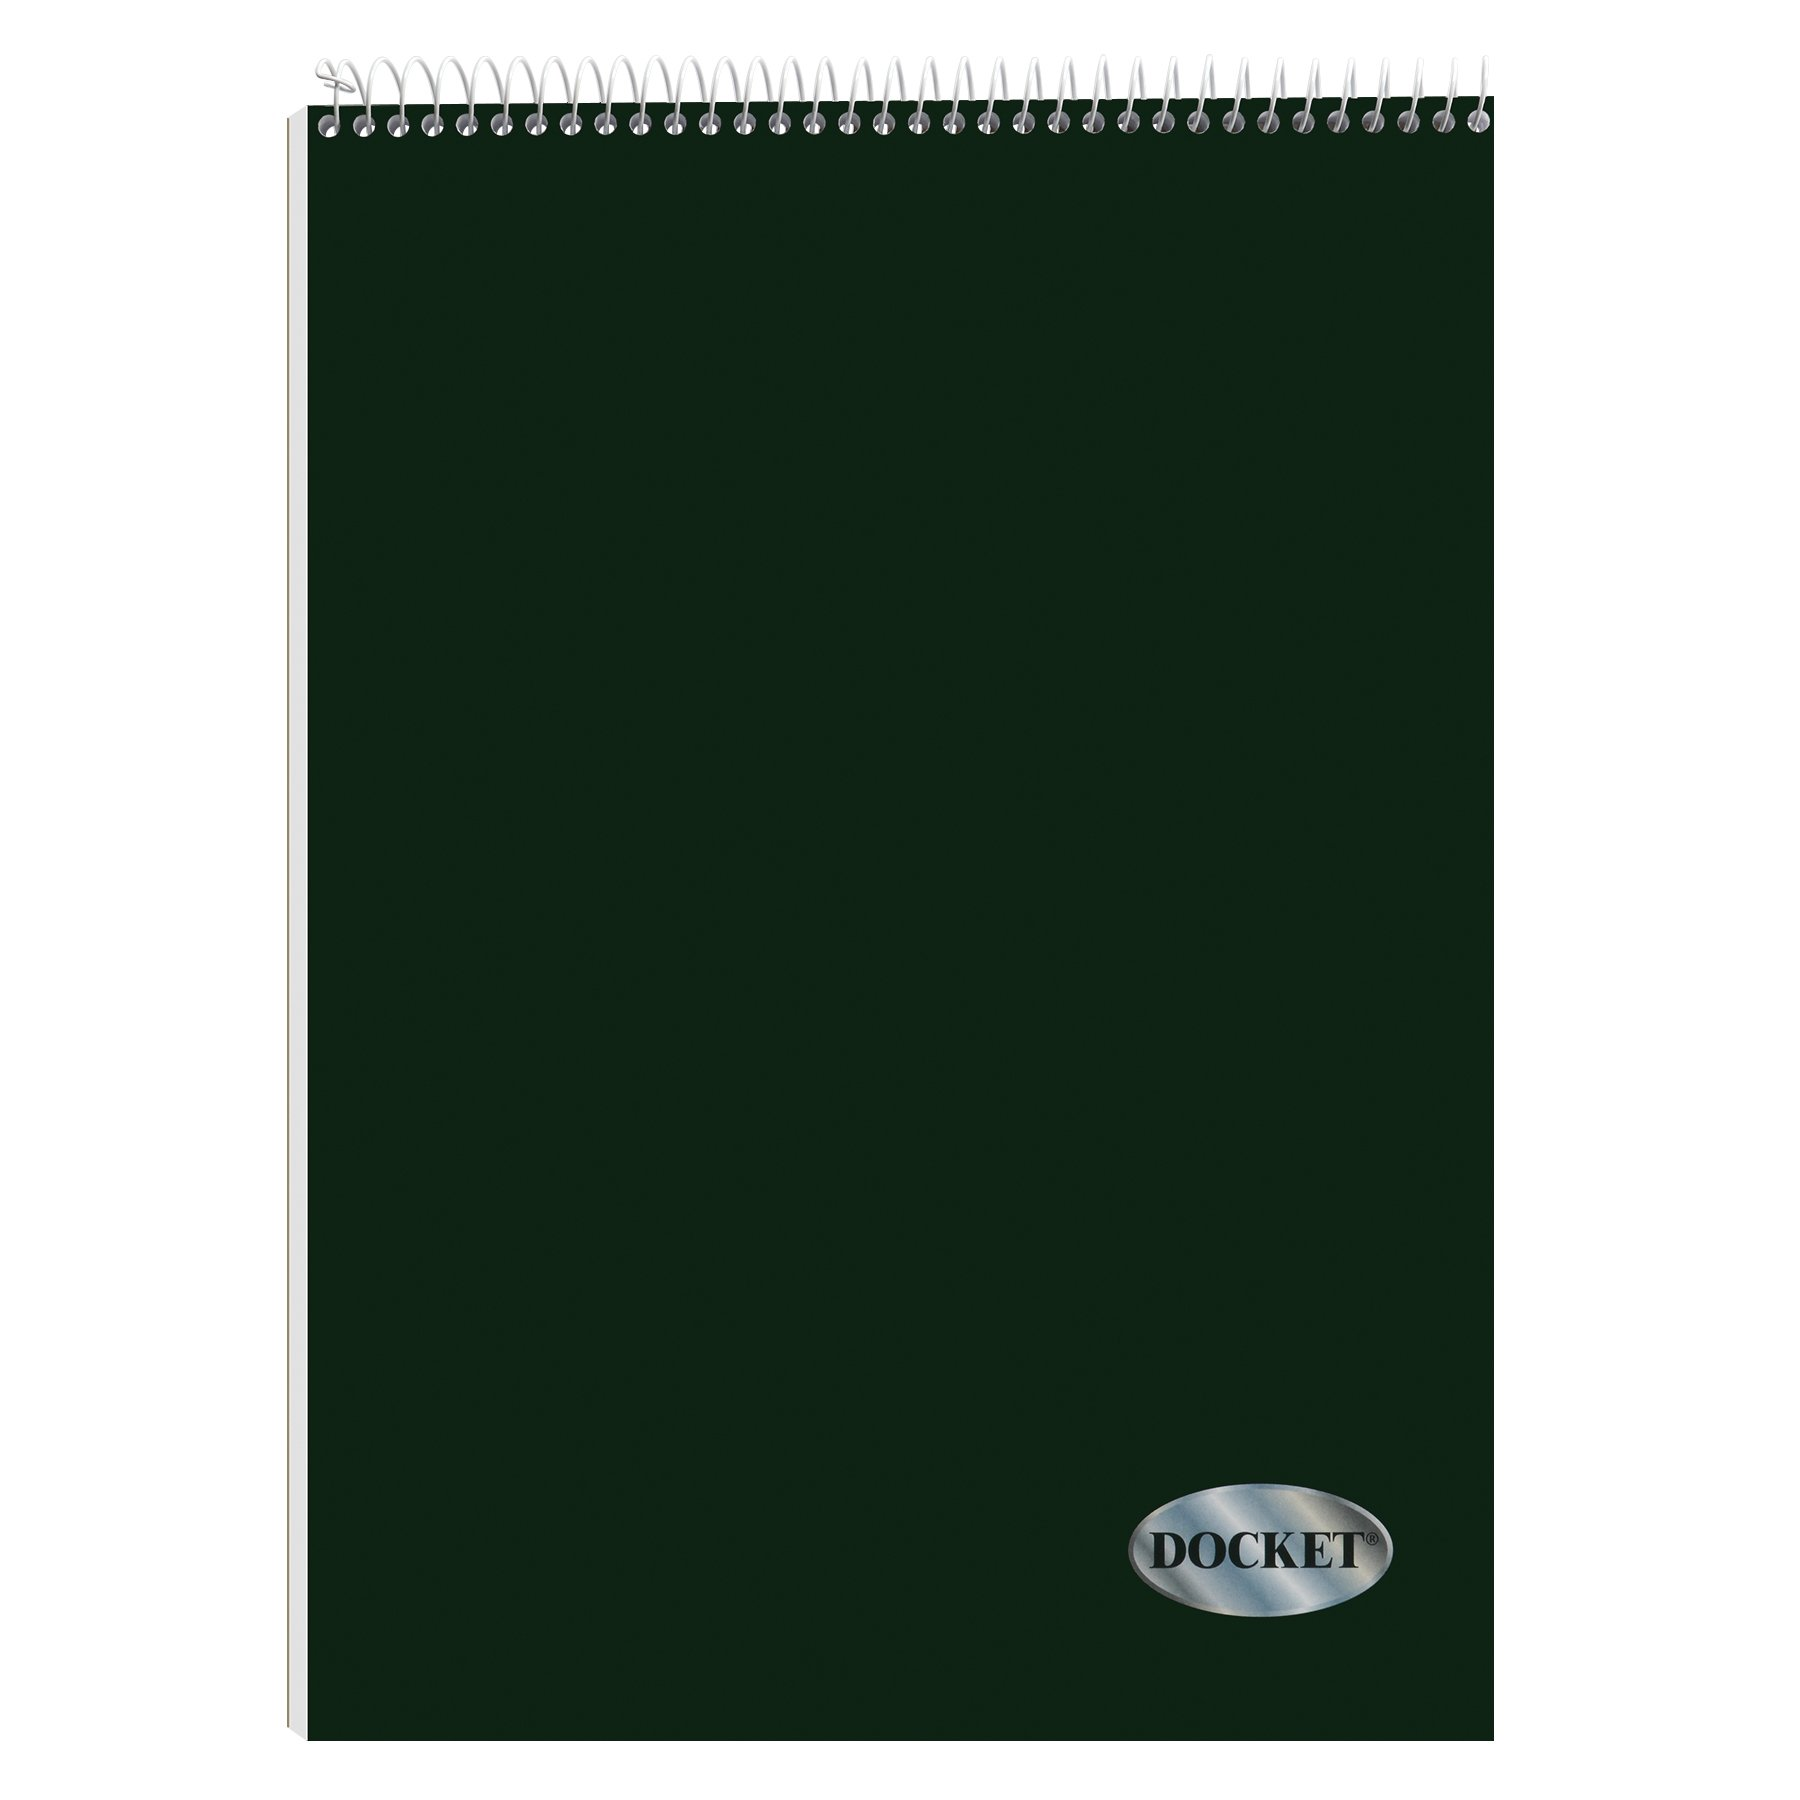 TOPS Docket Quadrille Pad, Wire Bound, 8-1/2 x 11-3/4 Inches, Quad Rule (4 x 4), White Paper, Black Covers, 70 Sheets per Pad (63801)